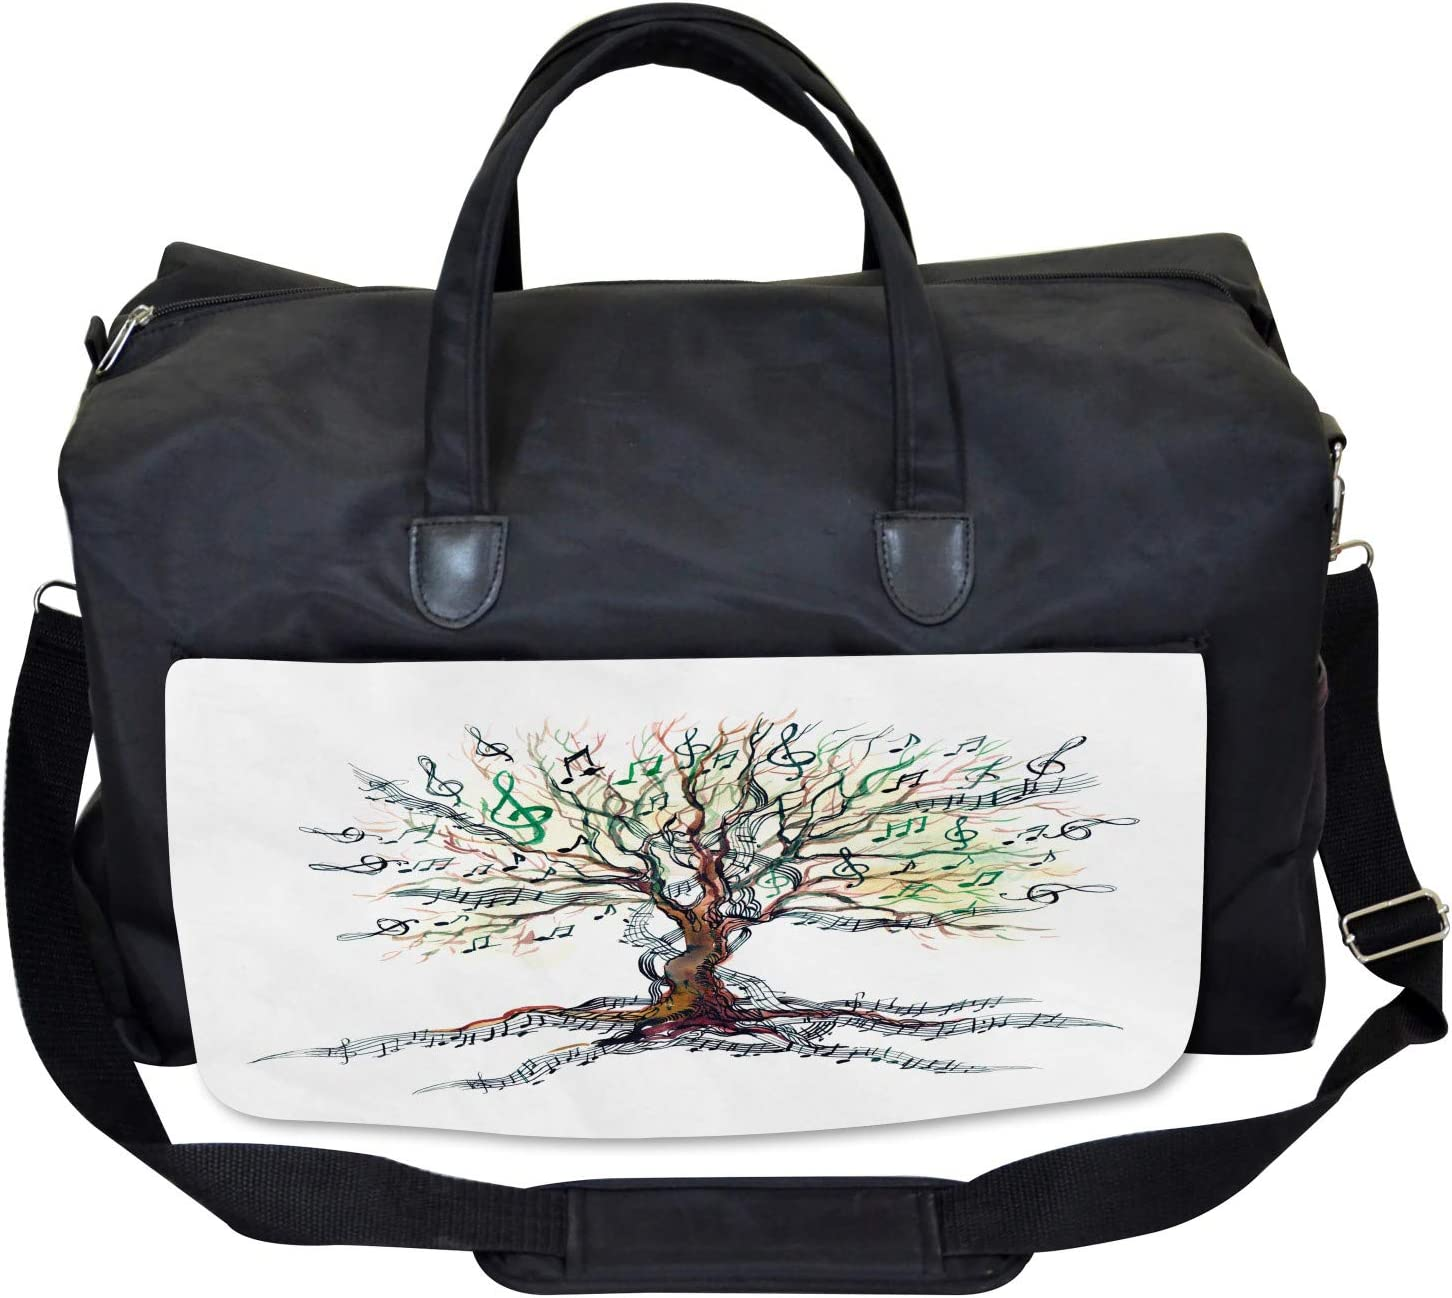 Autumn Nature Tree Swirls Large Weekender Carry-on Ambesonne Music Gym Bag